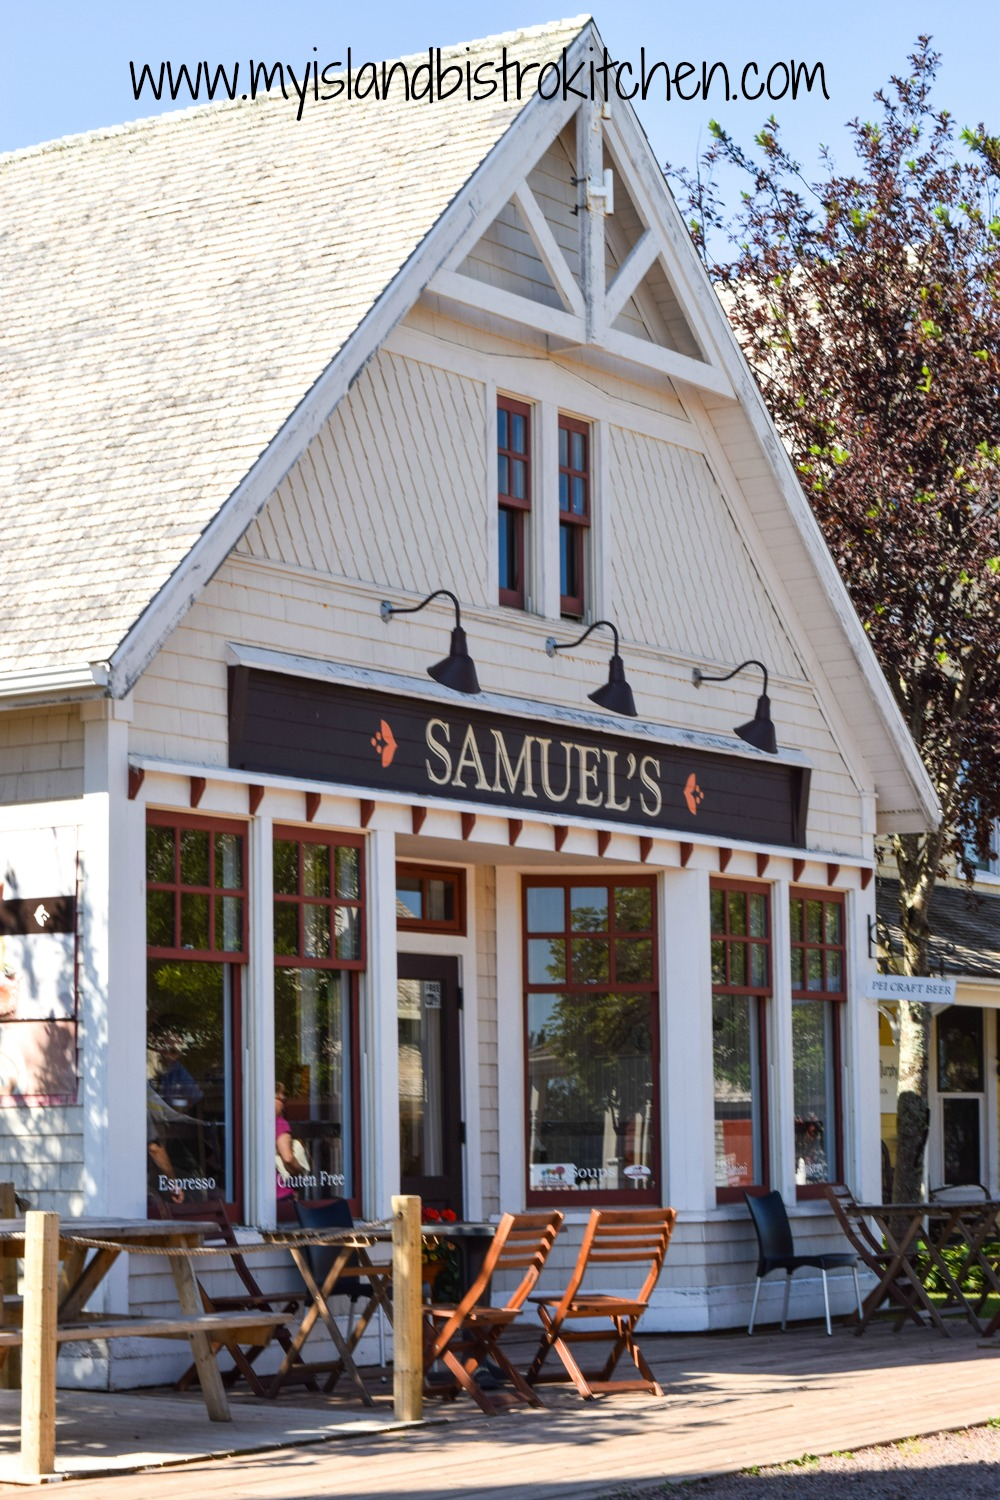 Samuel's in Cavendish, PEI